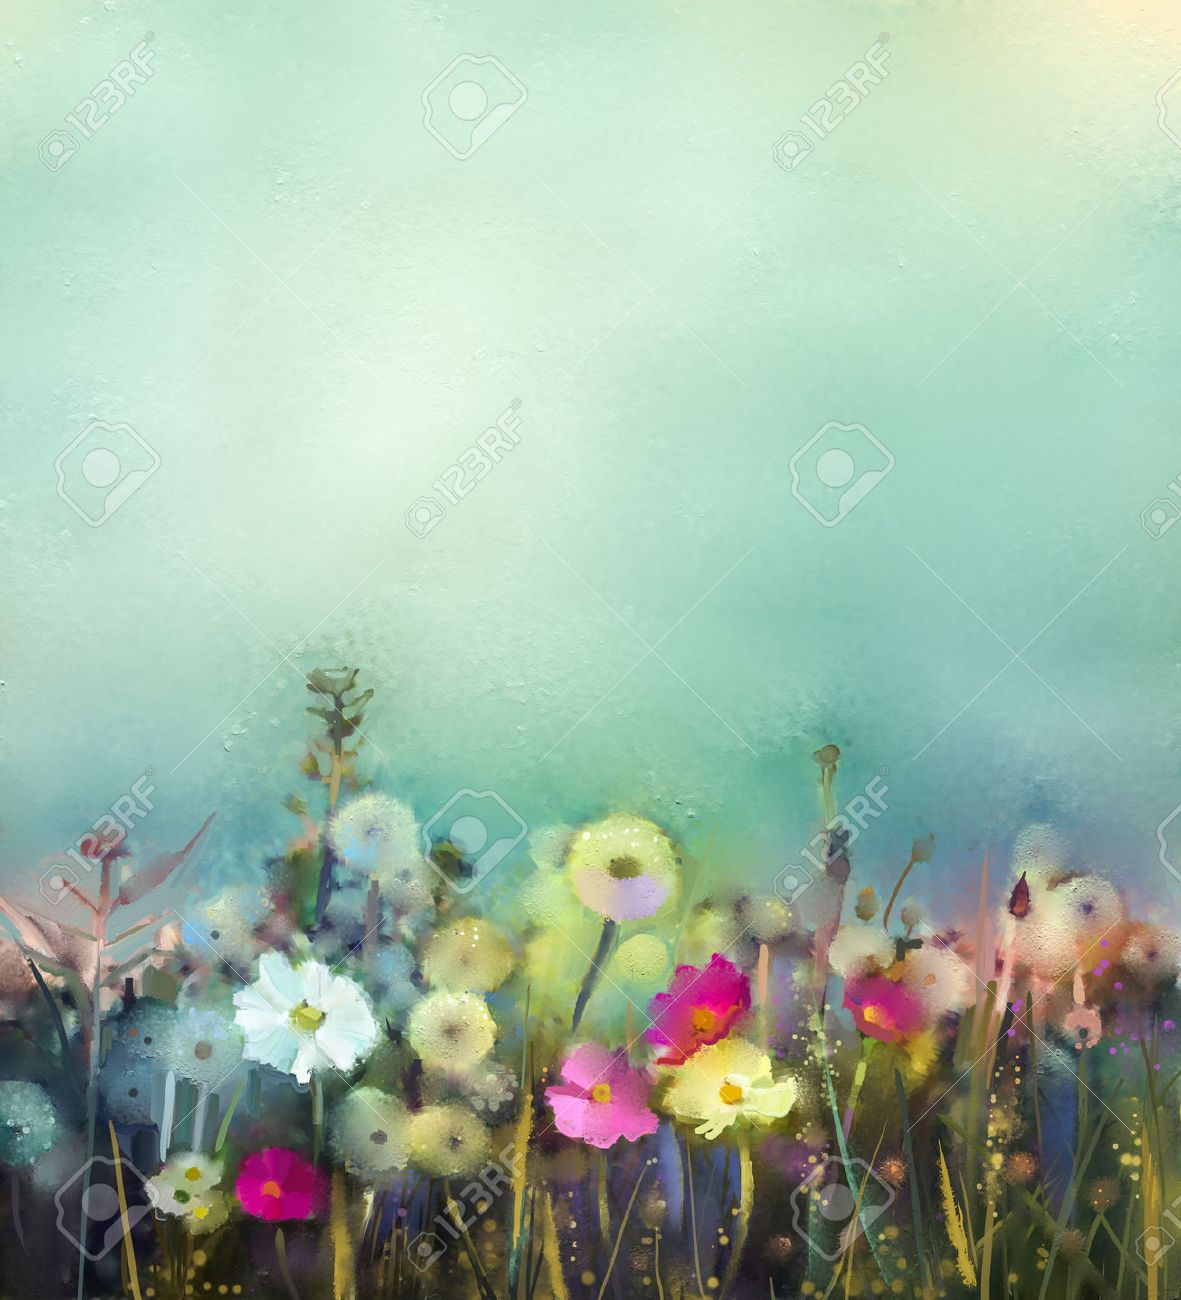 Poppy flower field at night royalty free stock photography image - Oil Painting Flowers Dandelion Poppy Daisy In Fields Hand Paint Wildflowers Field In